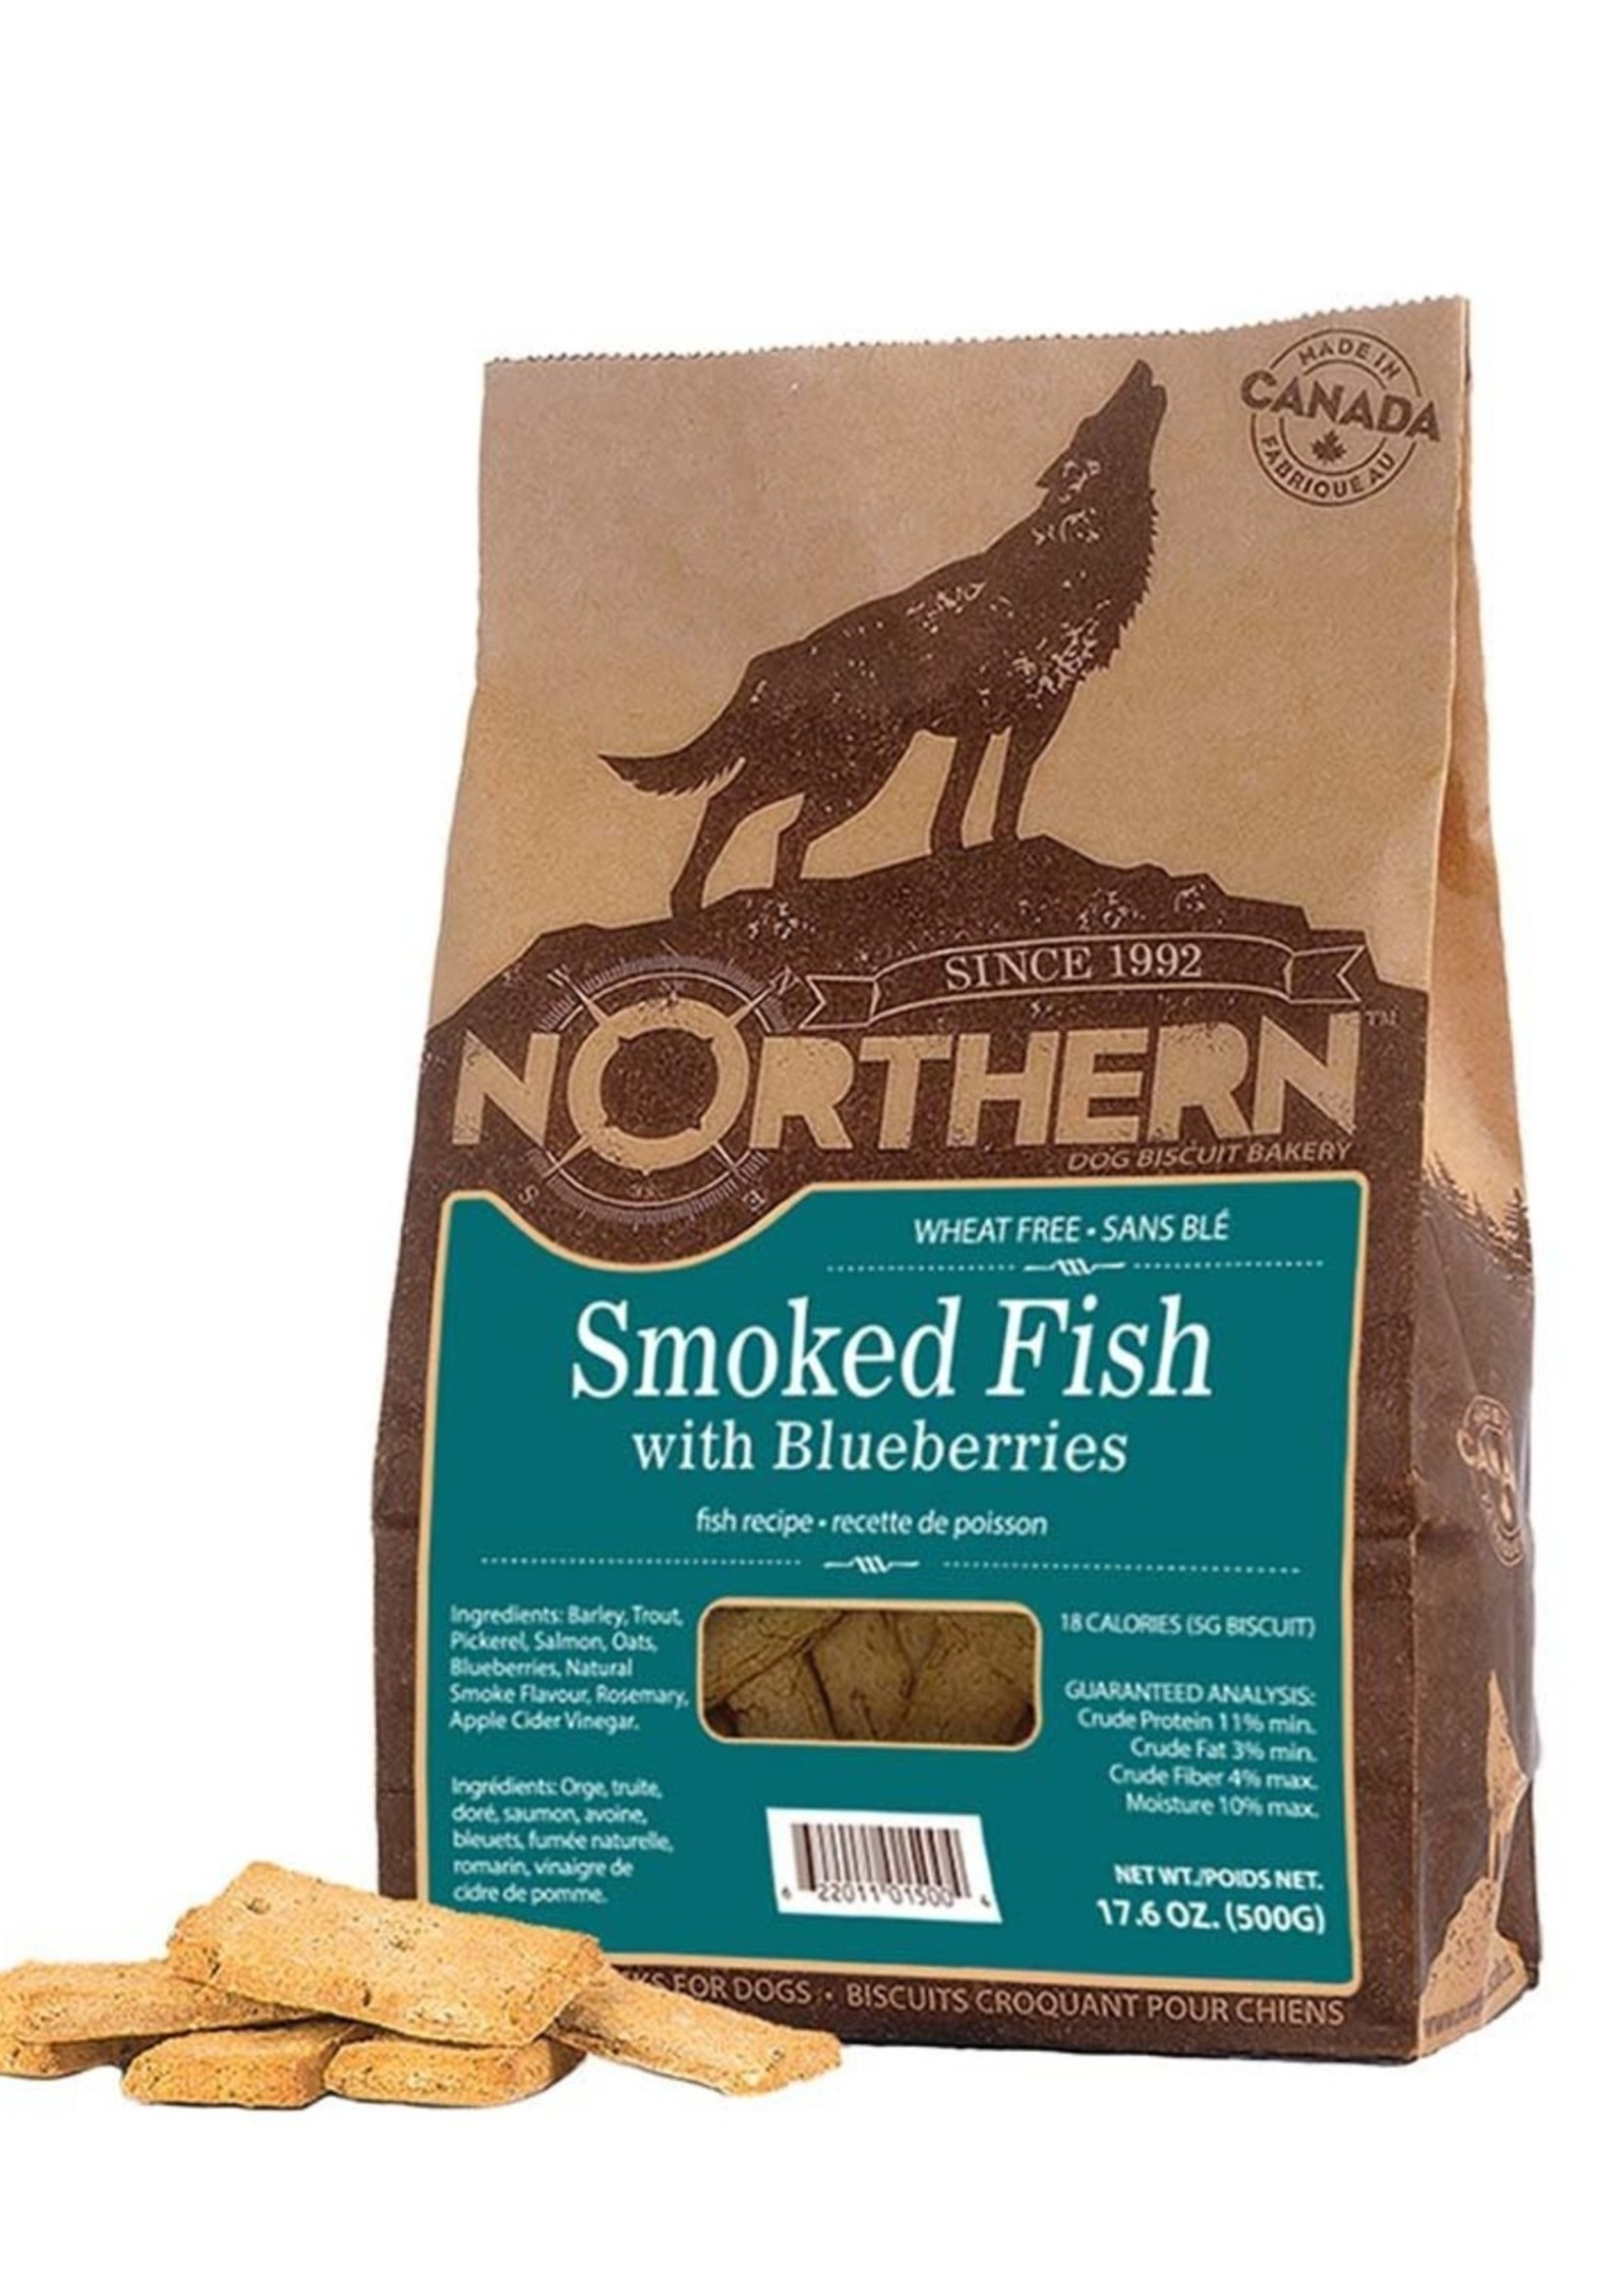 Northern Biscuit Smoked Fish with Blueberries 500g Single